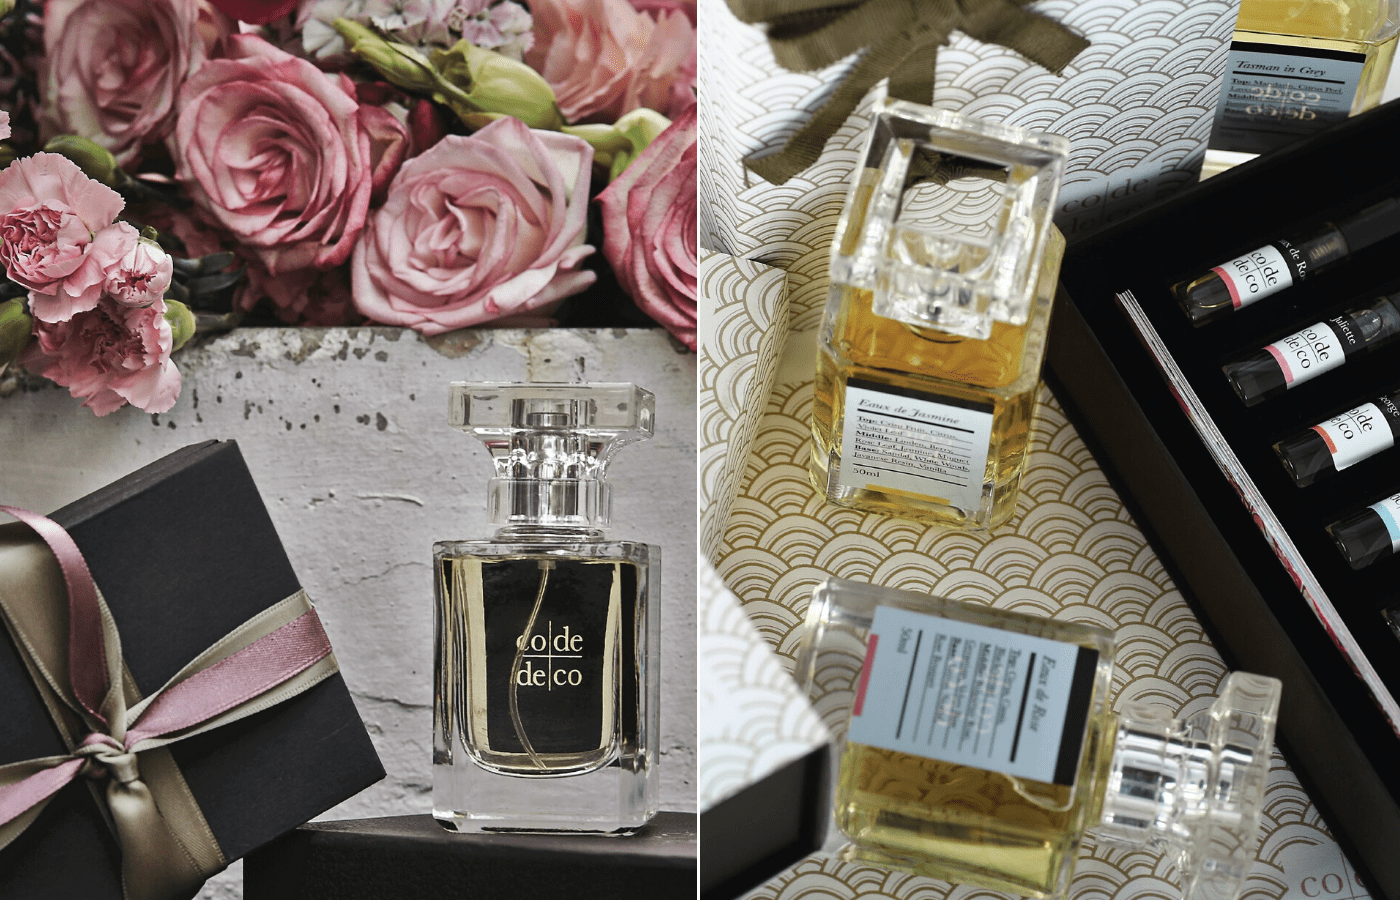 code deco | Local perfume brands | Honeycombers Singapore